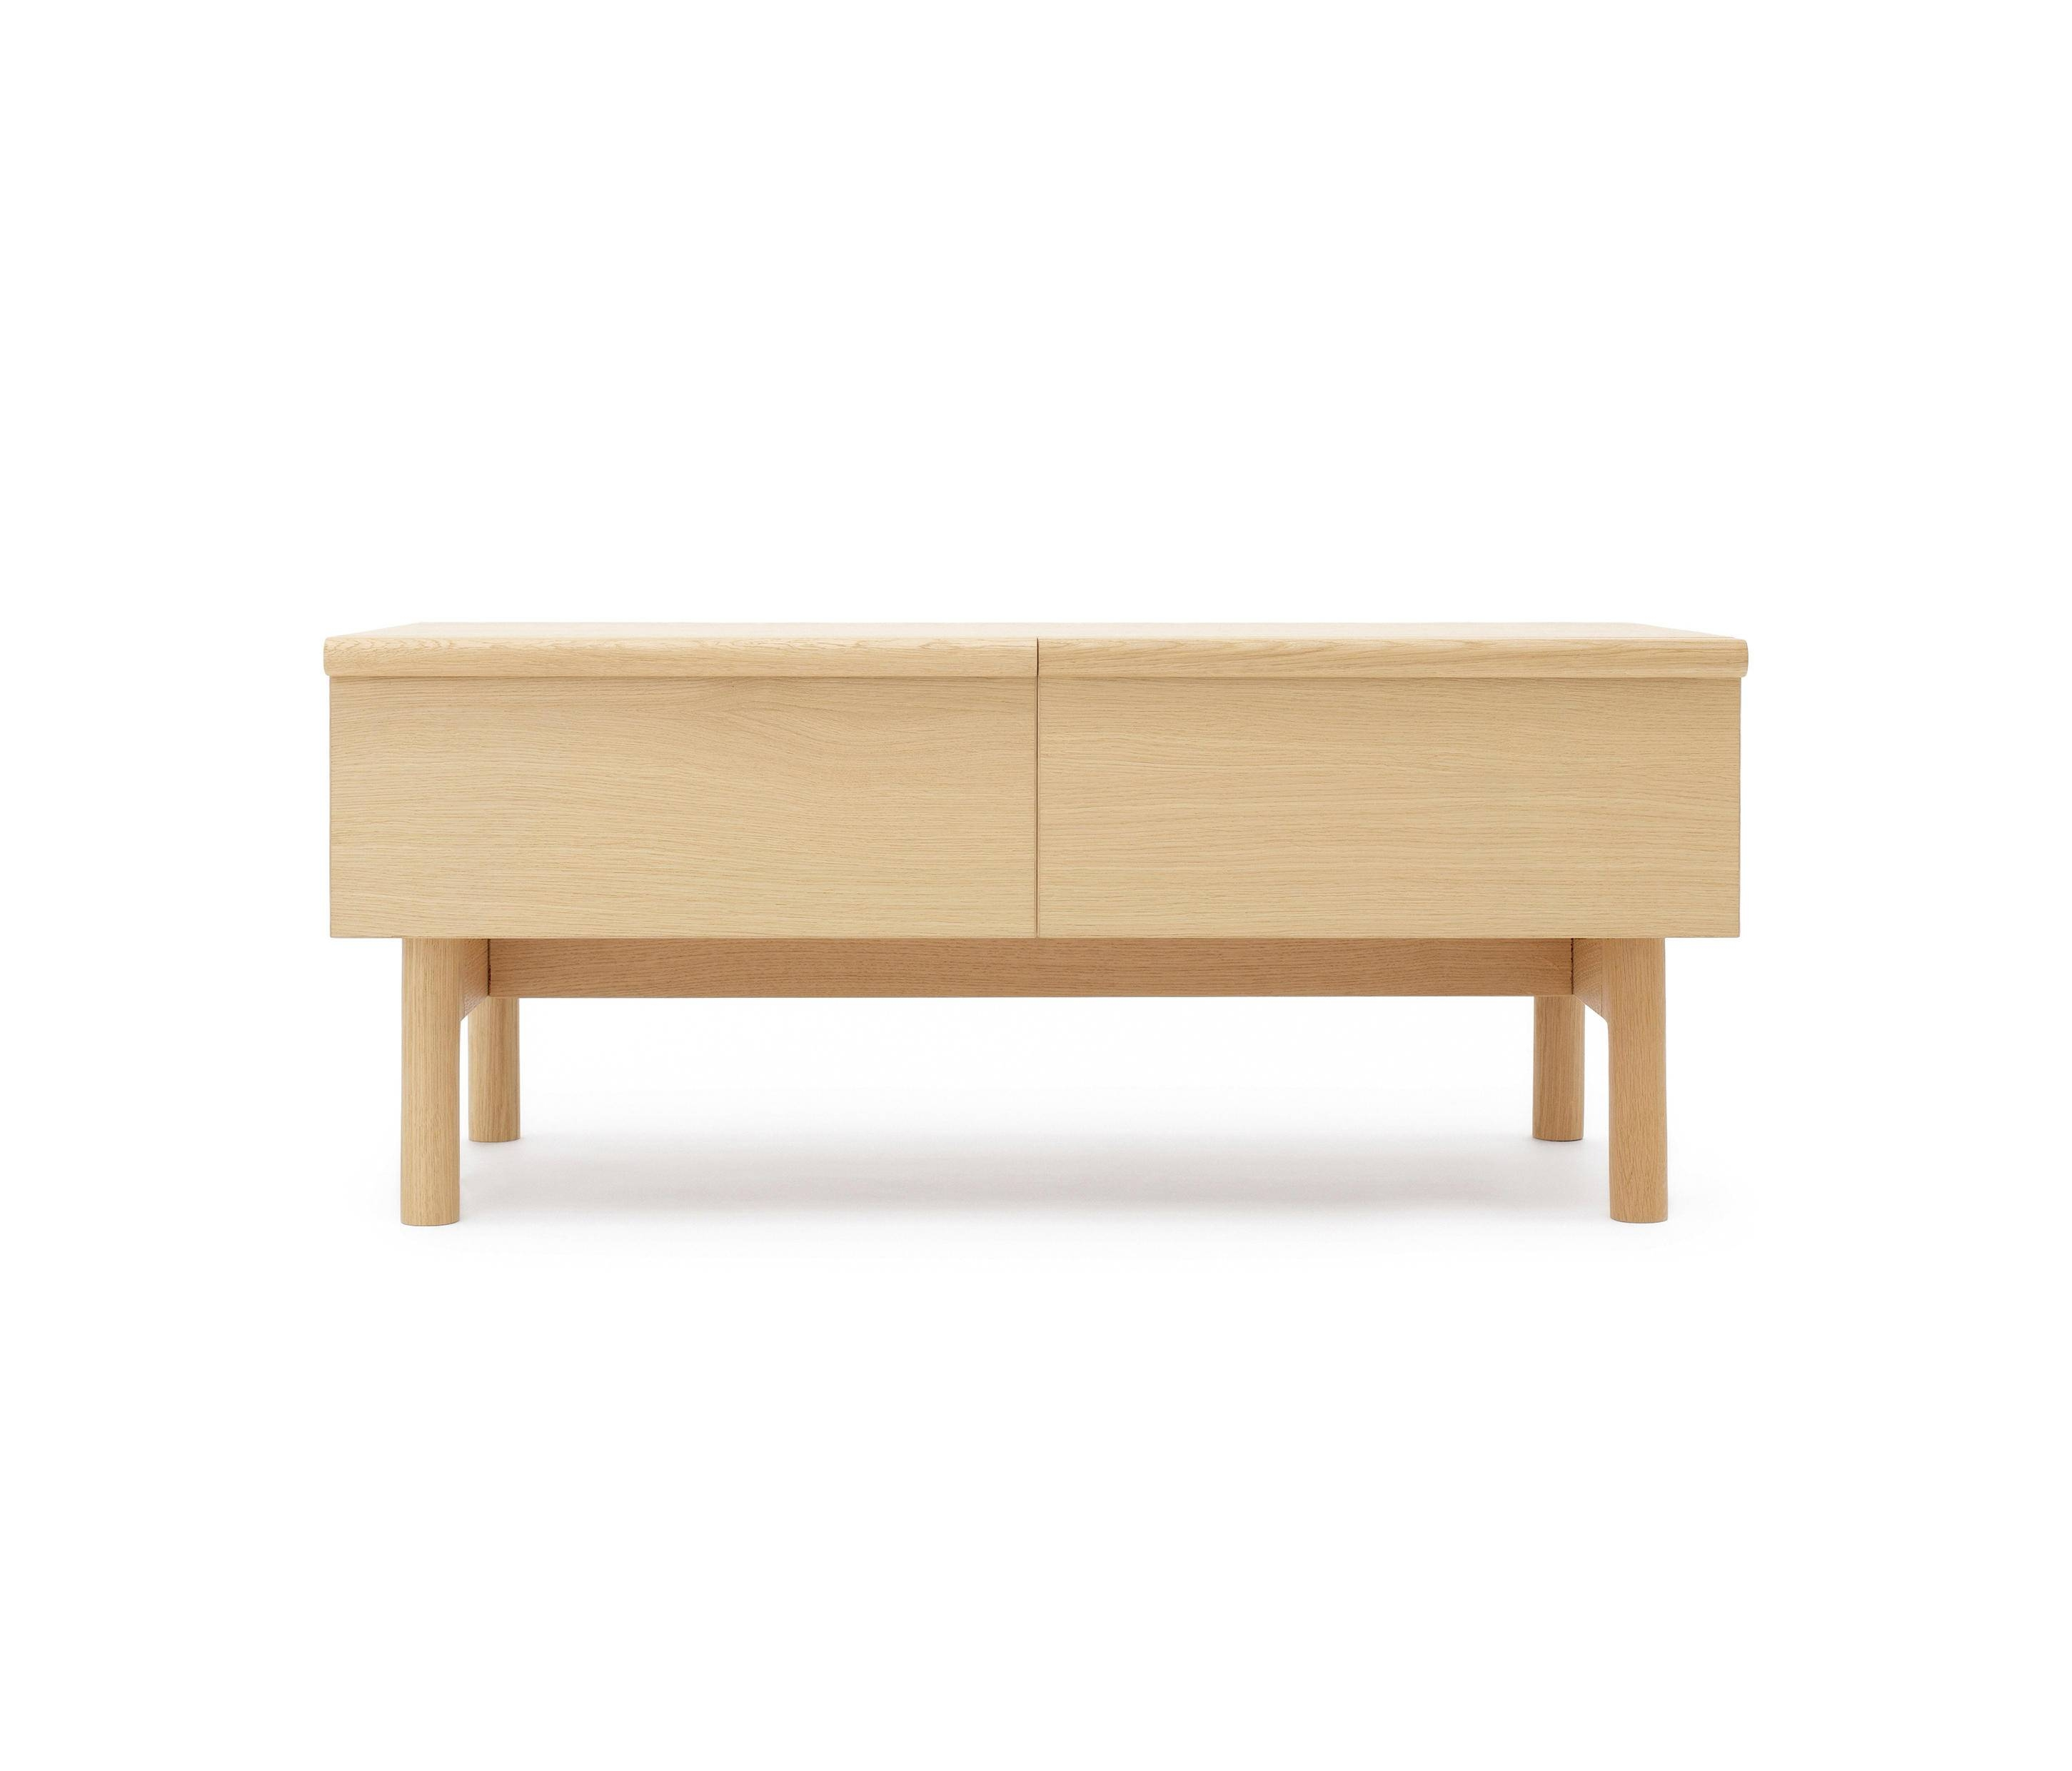 Low Sideboard With Two Drawers – Sideboards From Bautier | Architonic Pertaining To Low Sideboards (#12 of 20)